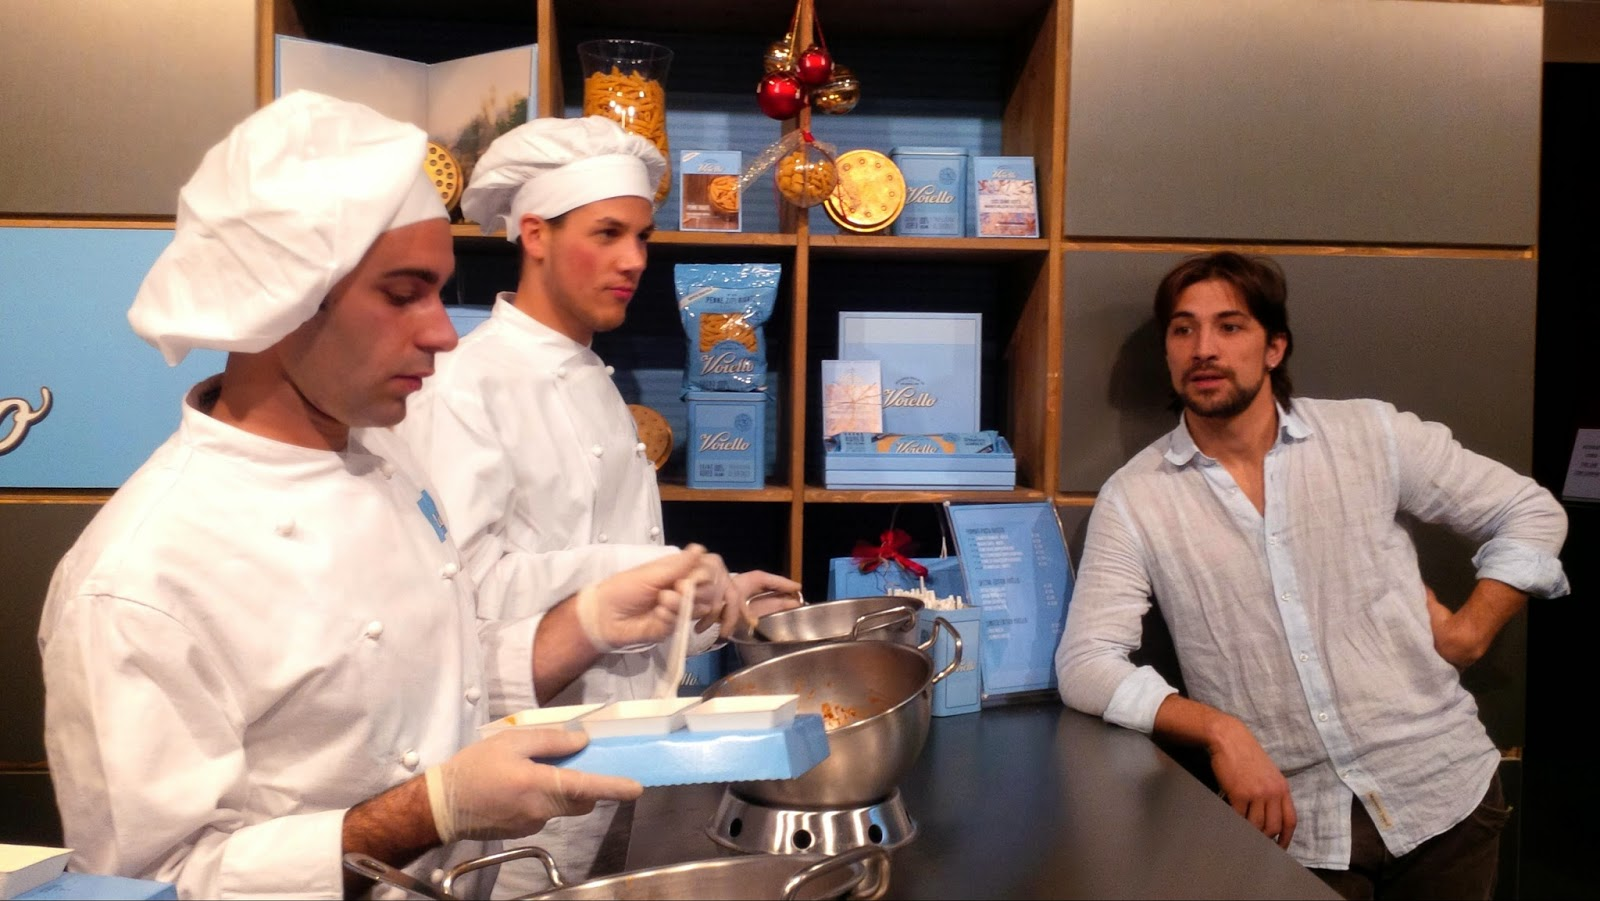 Three gusy and their pasta at Taste of Christmas event